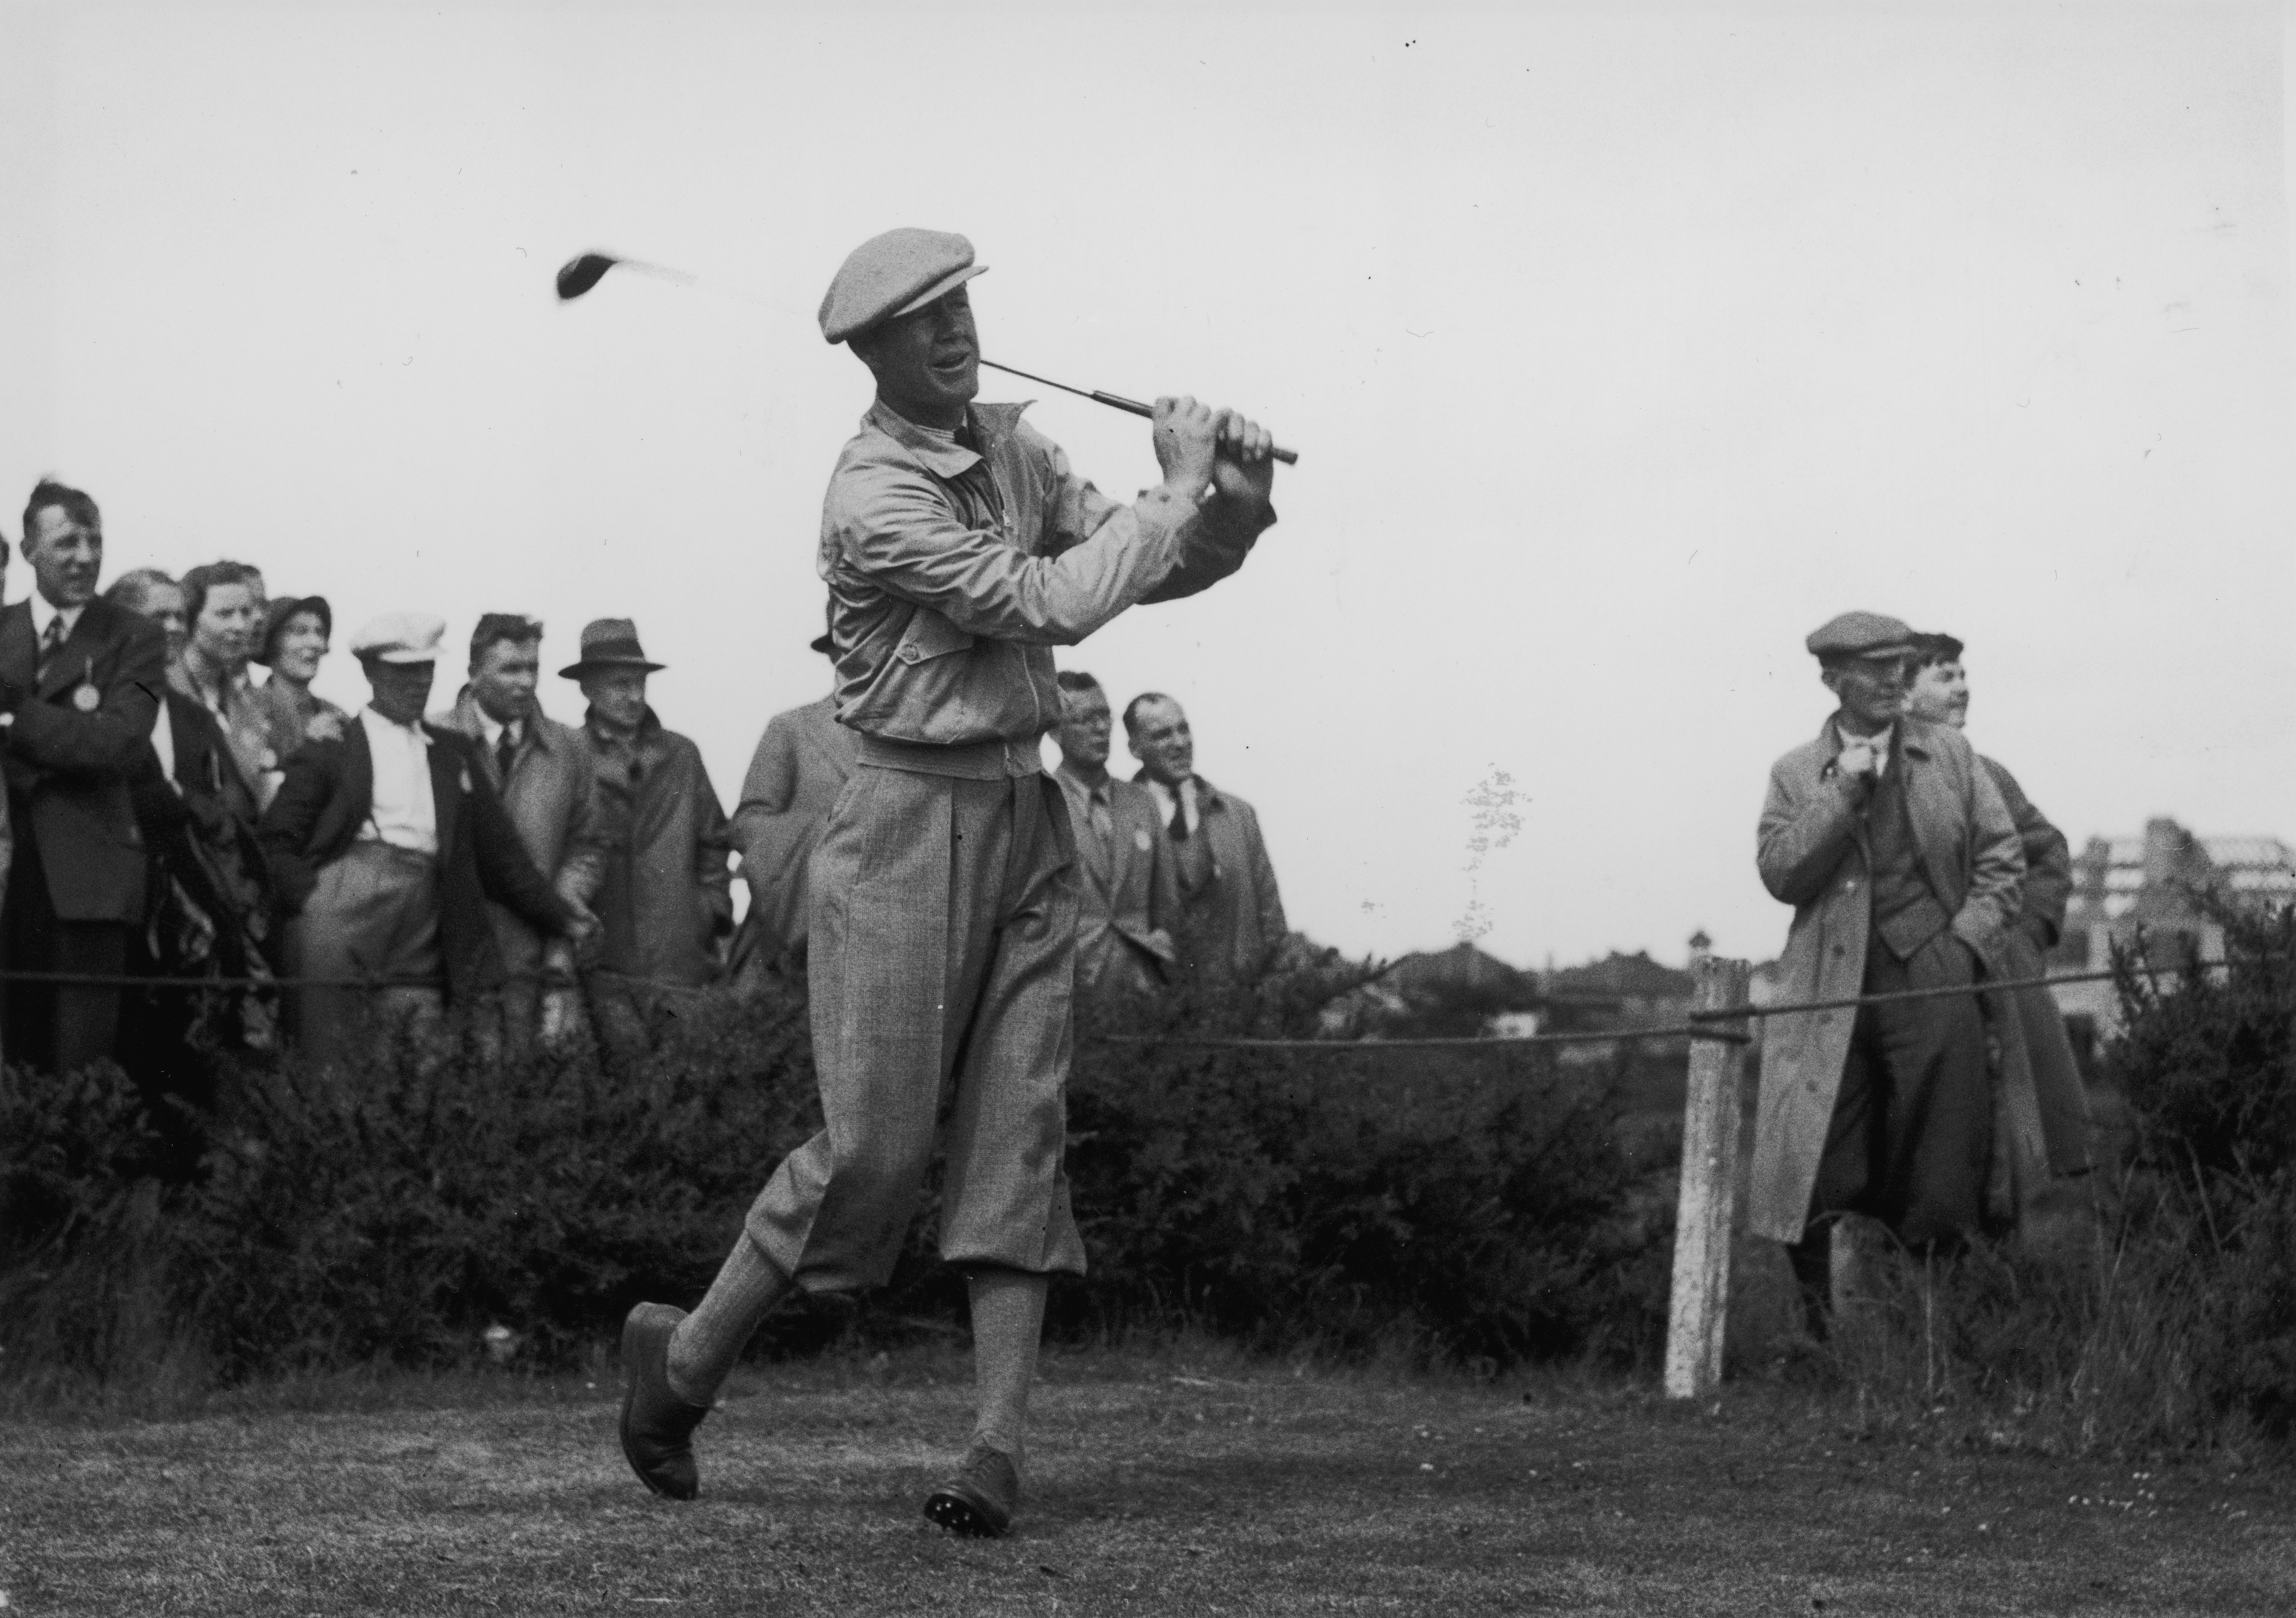 30th June 1937: American golfer, Byron Nelson driving off during his match in the Ryder Cup. The USGA repetitive ball-testing machine is named 'Iron Byron' after him. He won two Masters, two USPGA and one US Open Championship before WW II intervened. (Photo by Fox Photos/Getty Images)